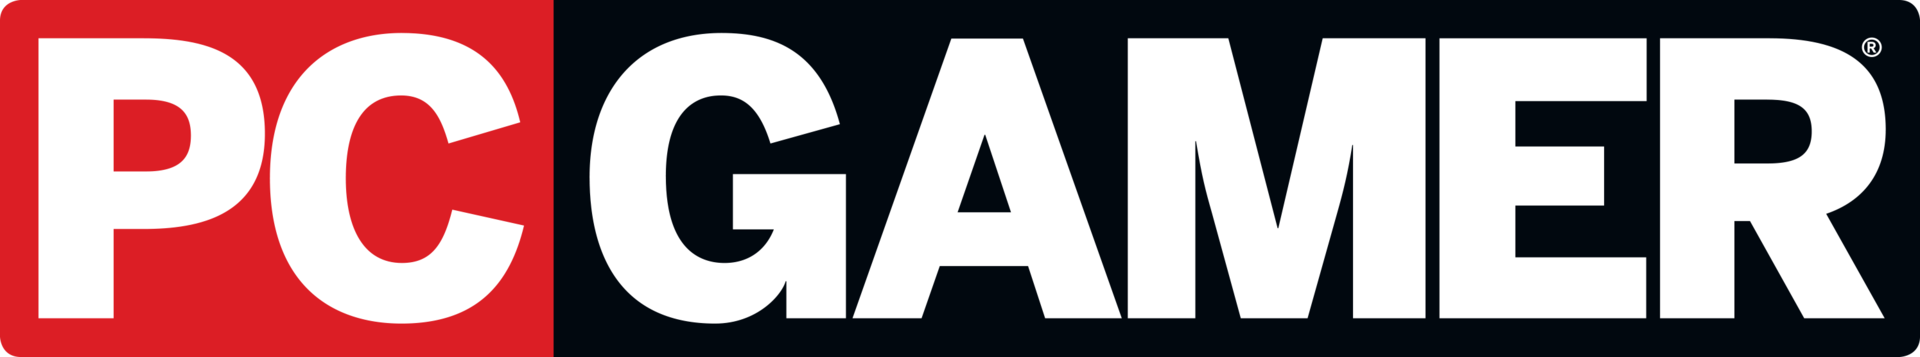 PC_Gamer_logo.png.4347691e0eb147cf2a107ed8e28cd3a7.png